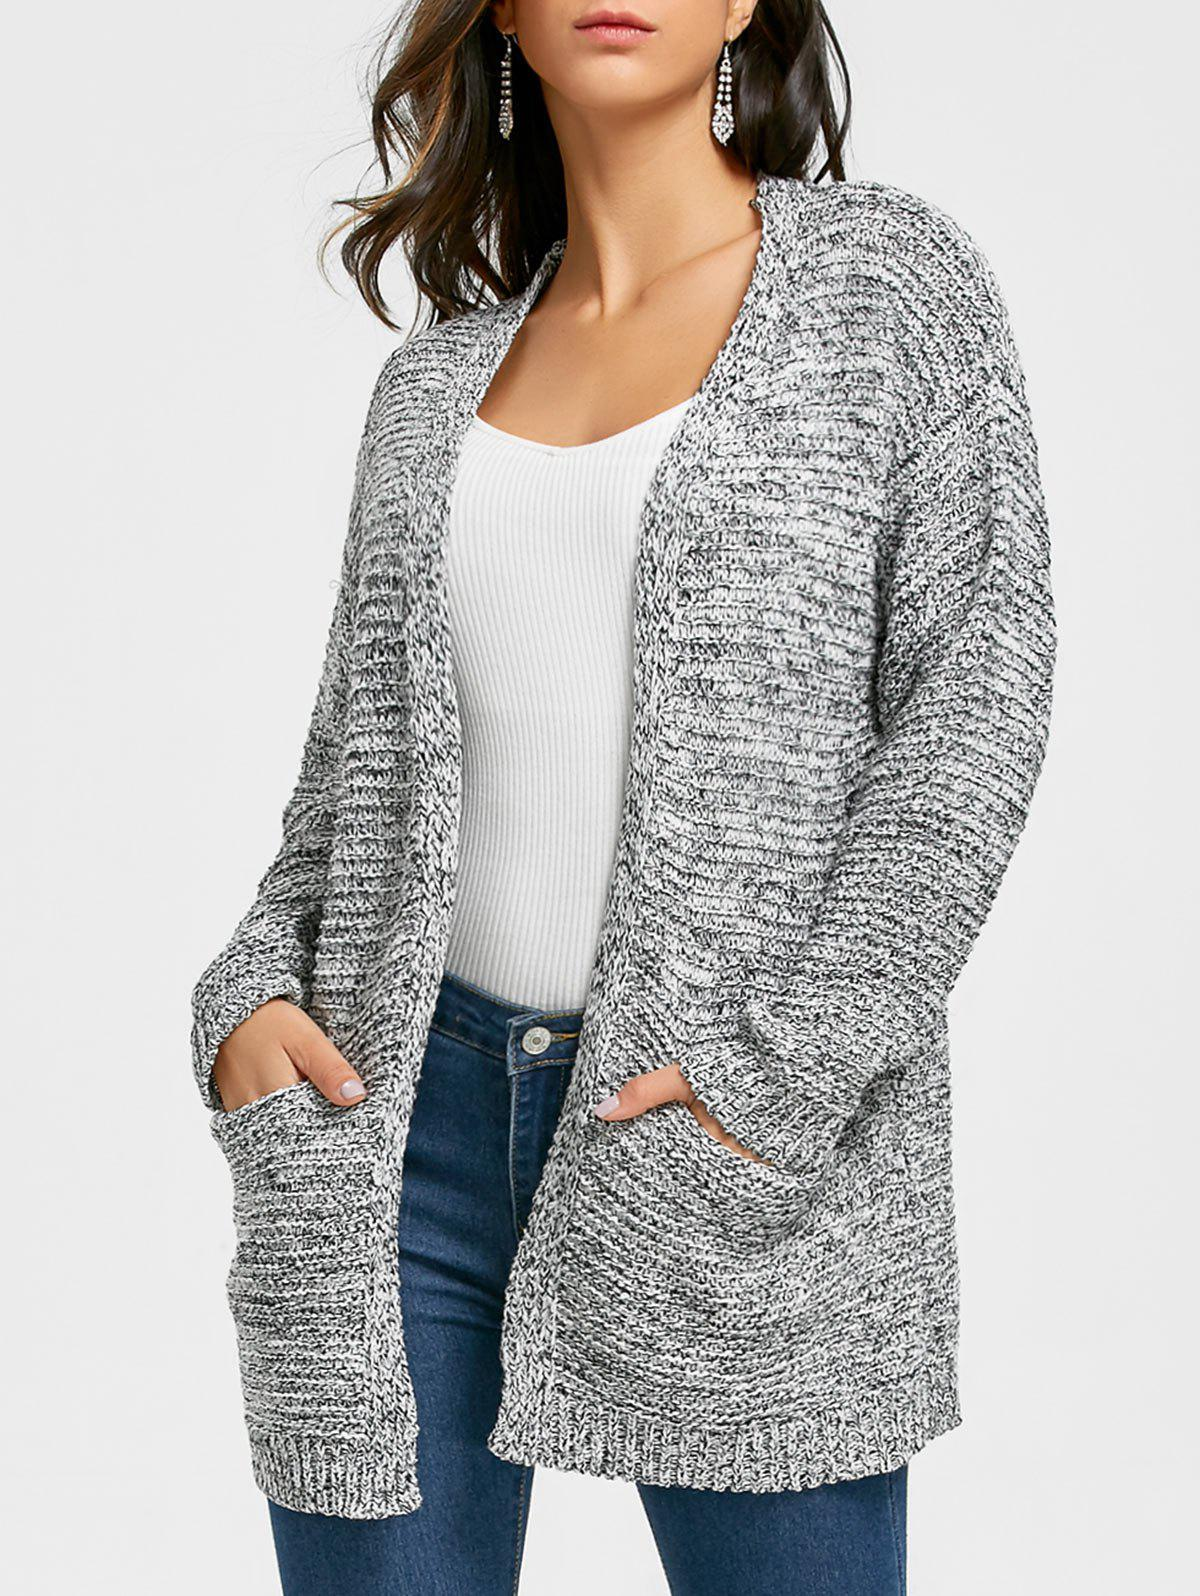 Open Front Pocket Tunic Cardigan modern autumn open front pocket cardigan